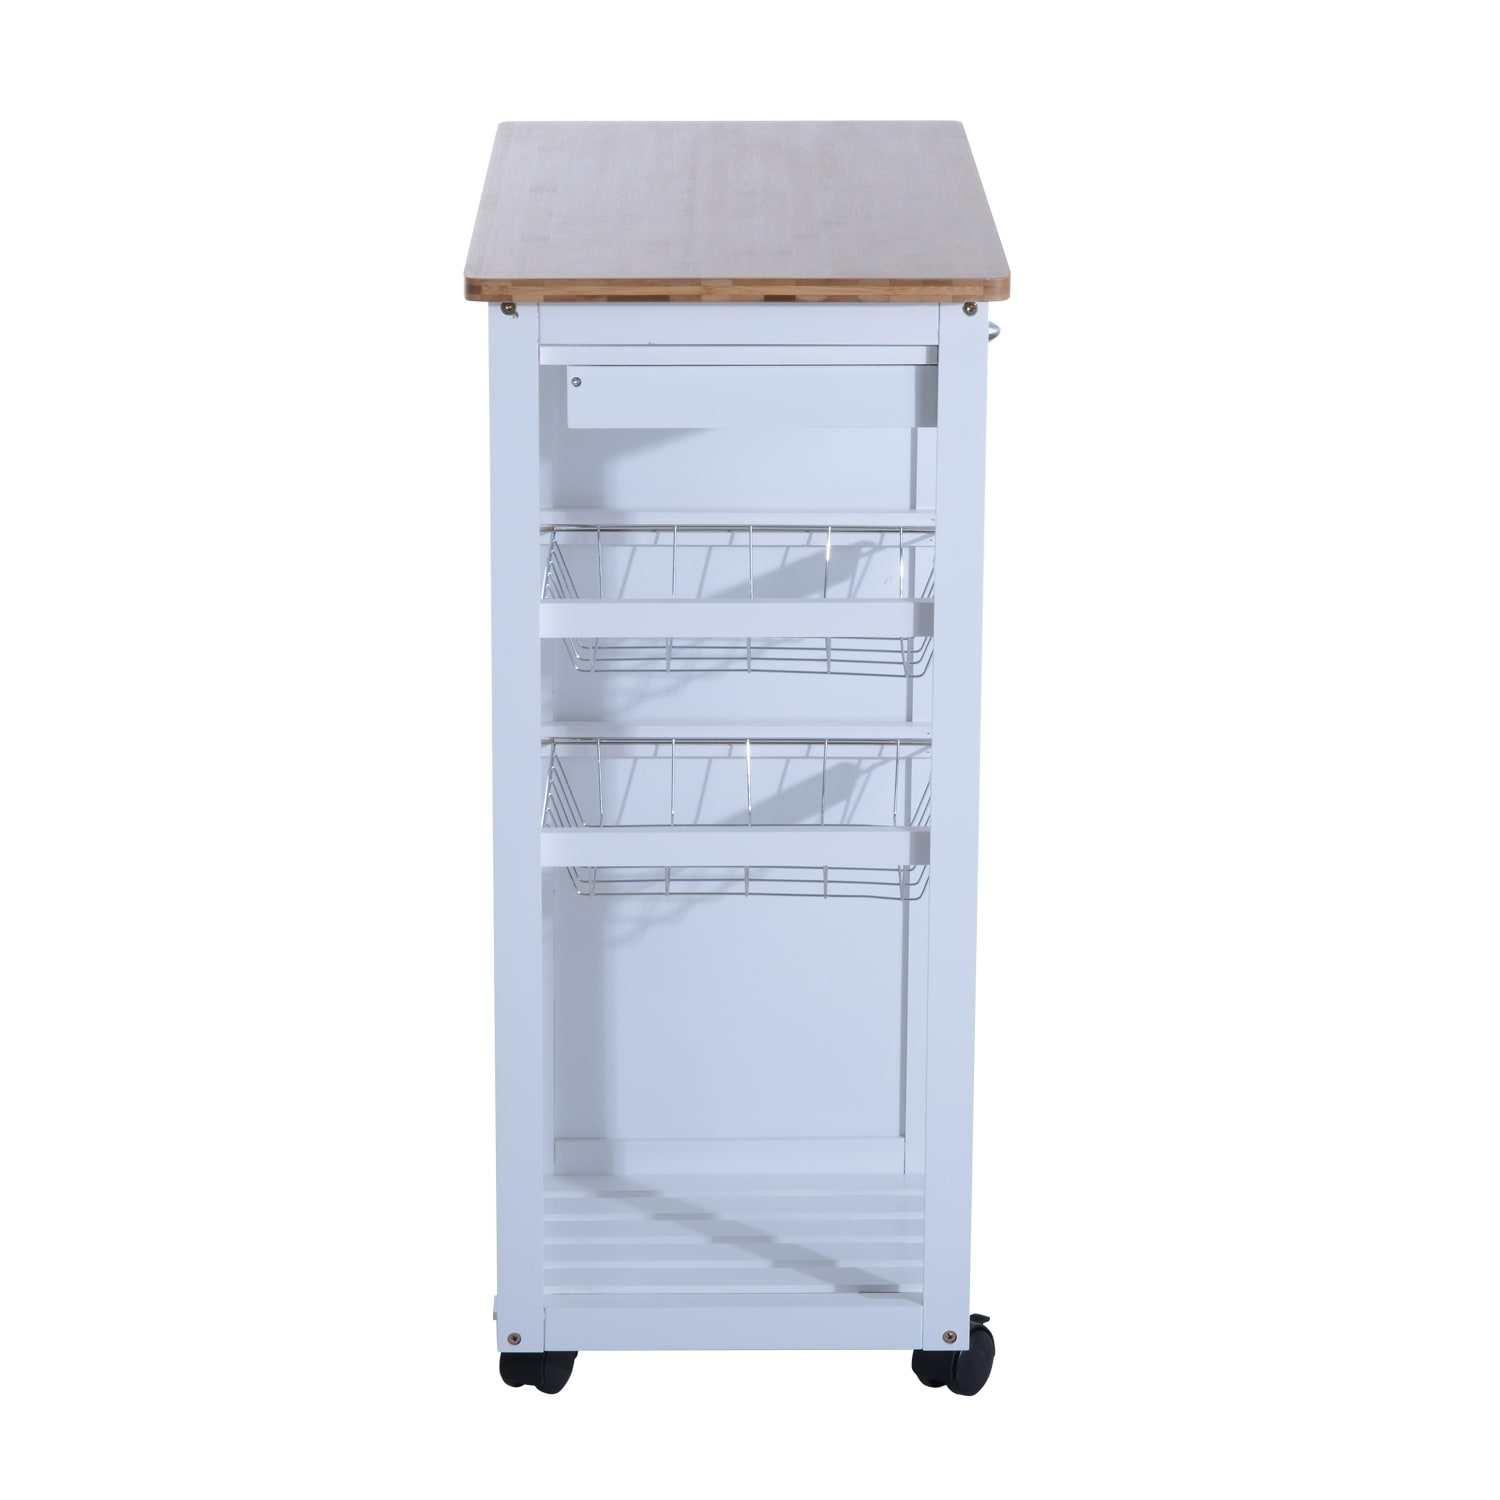 Homcom 34 Rolling Kitchen Trolley Serving Cart With Drawers And Cabinet On Free Shipping Today 18088169